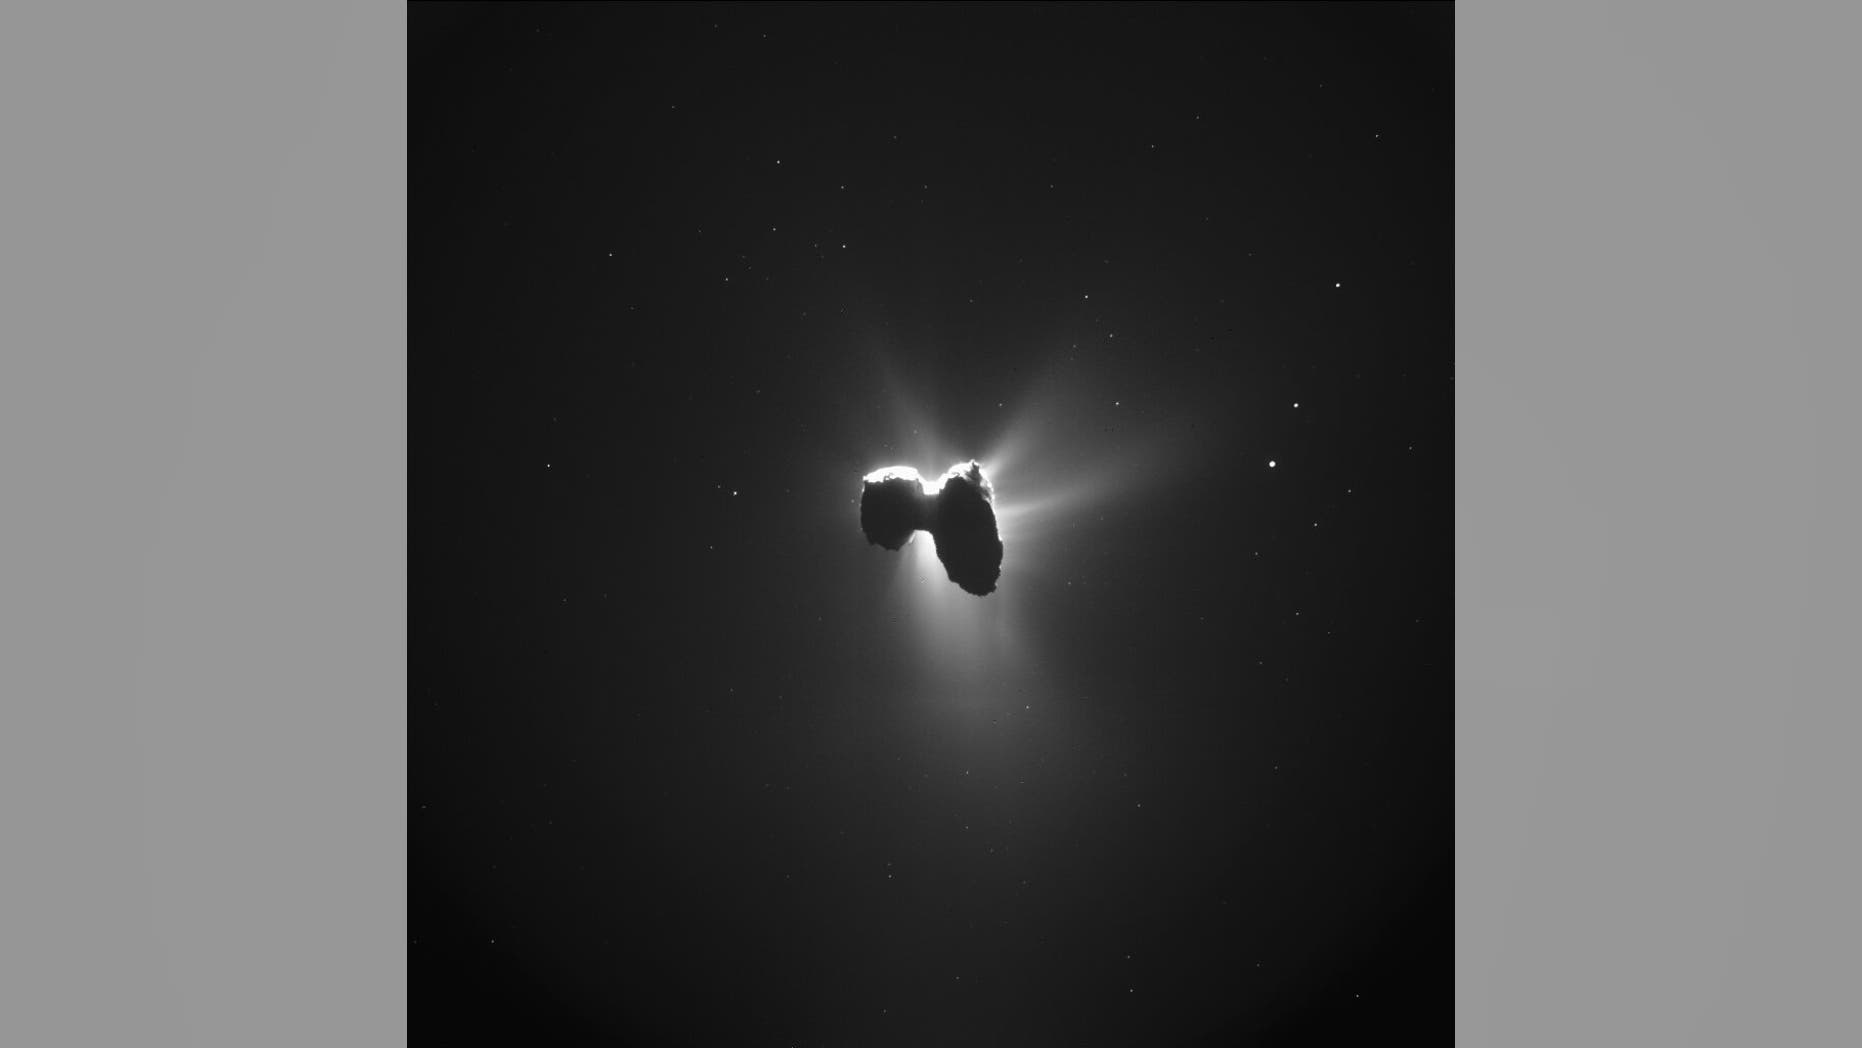 Rosetta made this image of the comet as it approached